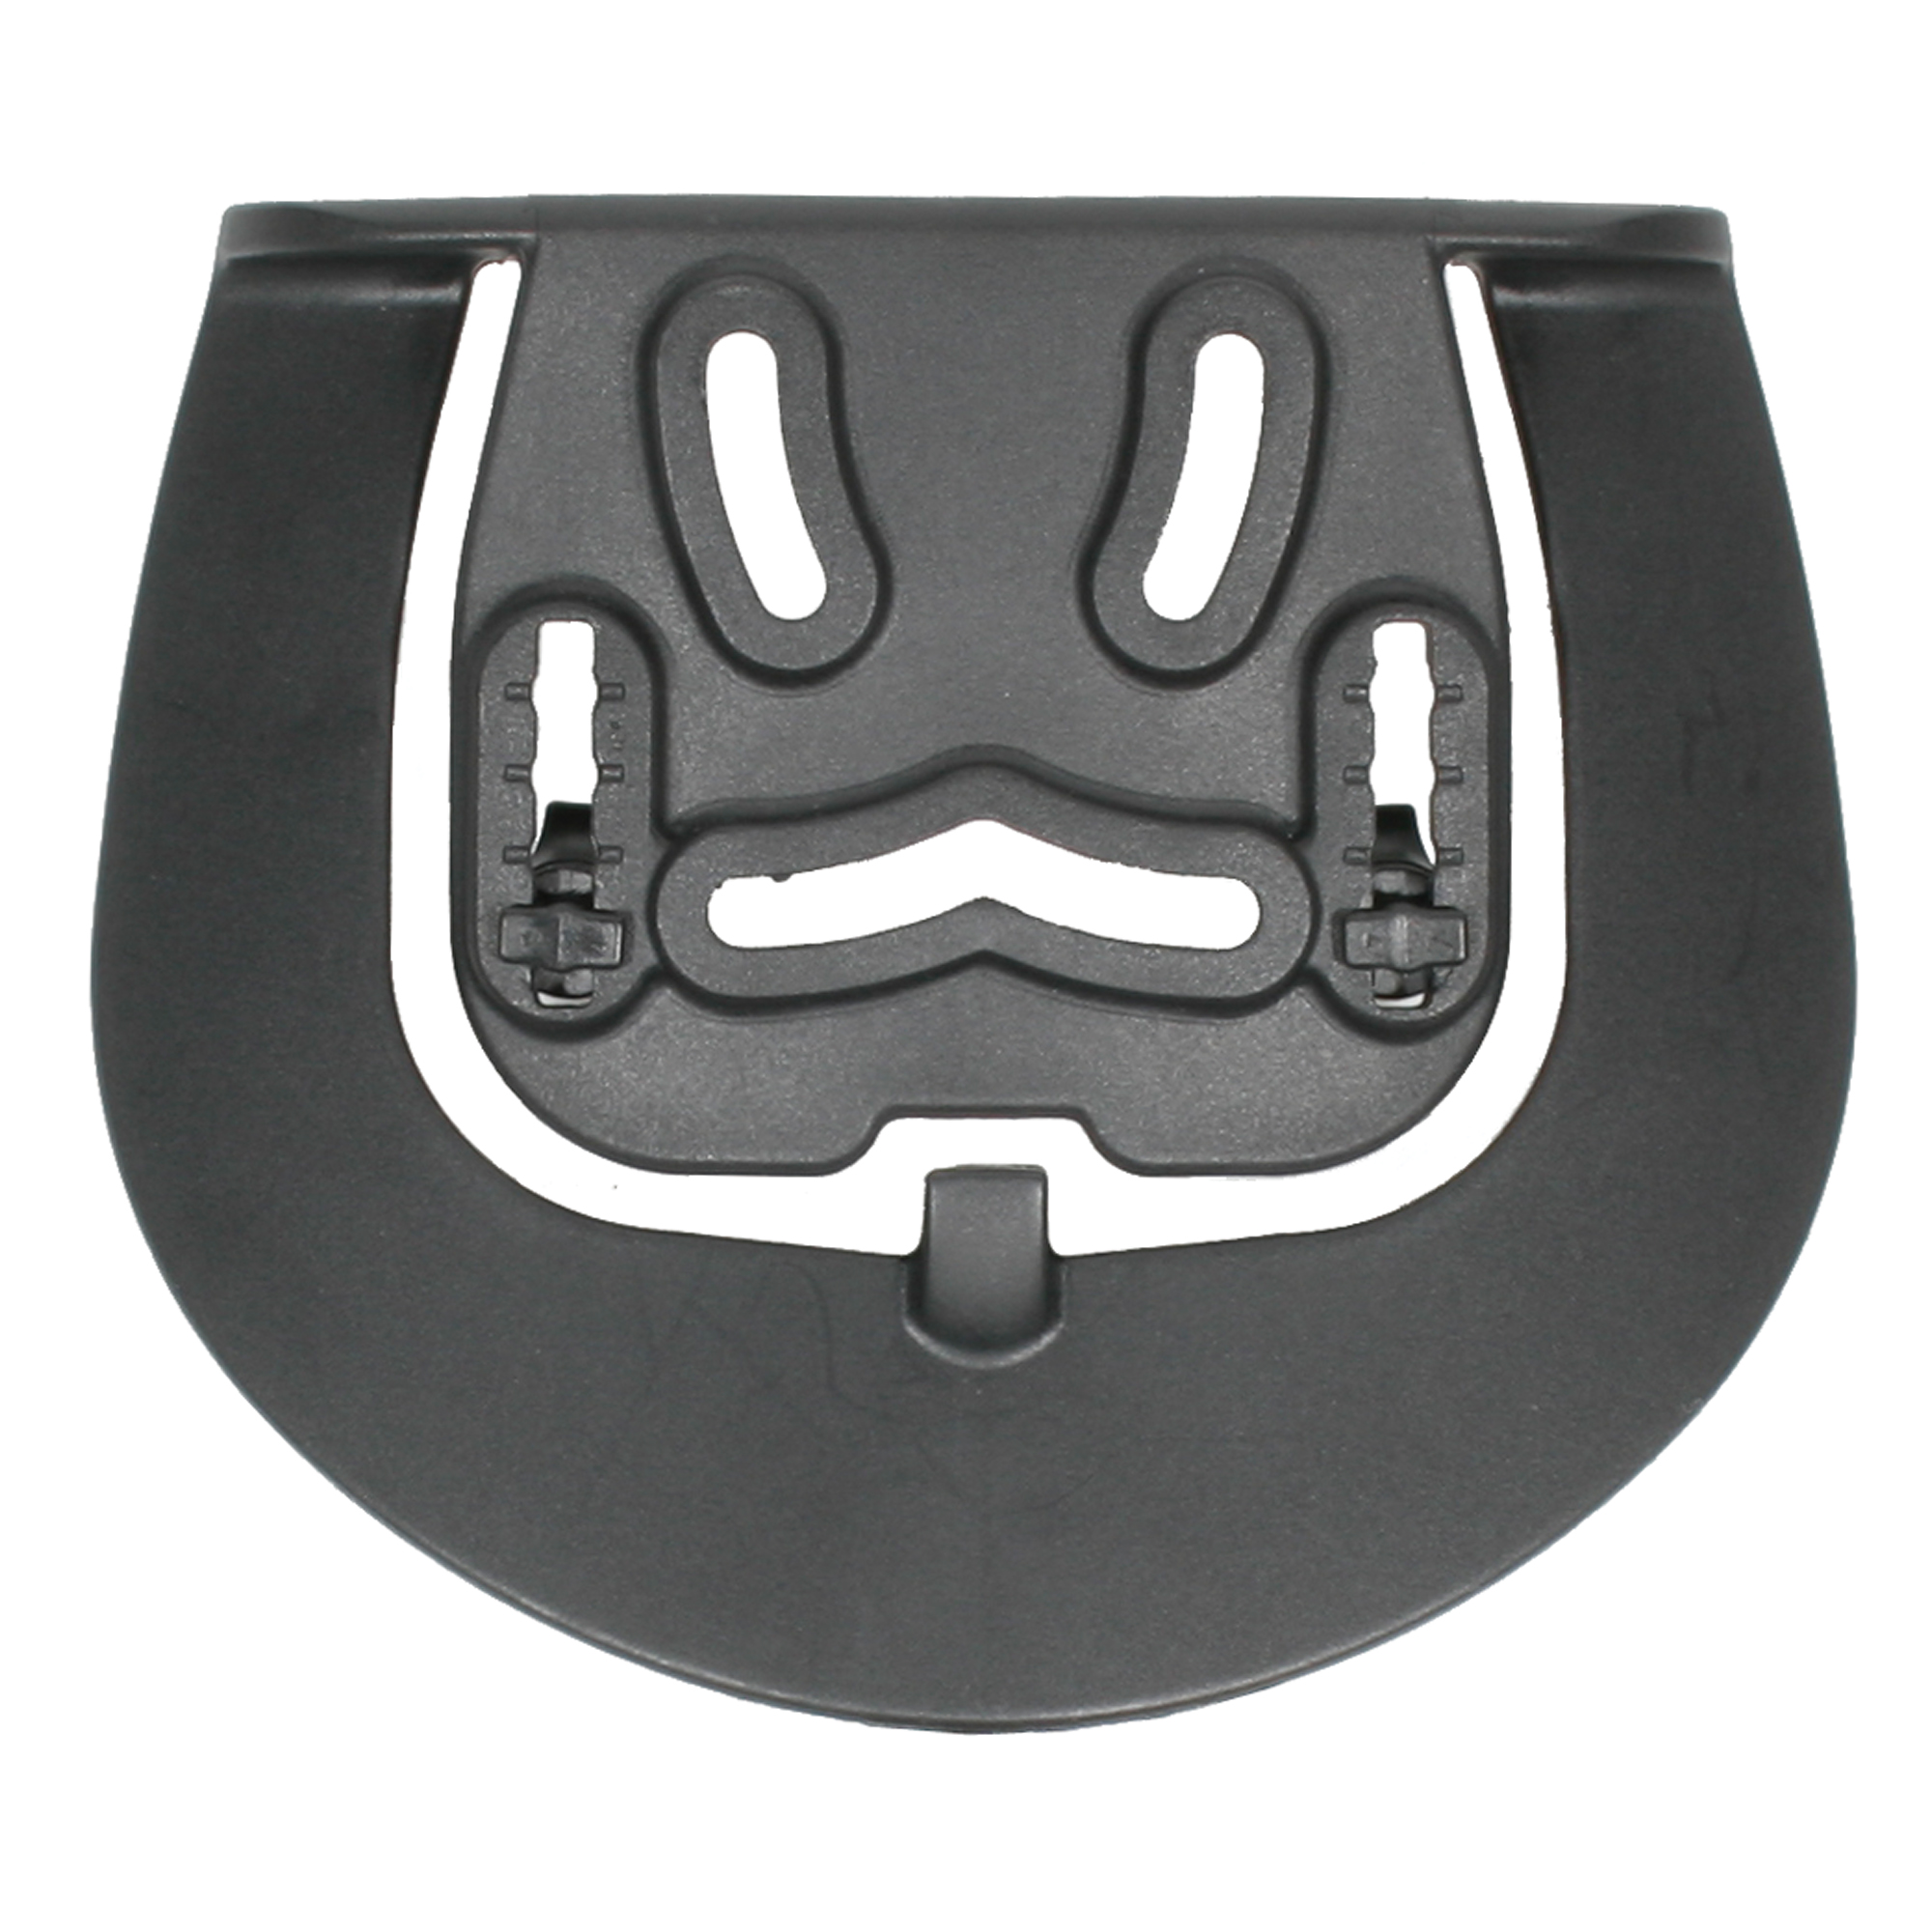 """Designed to fit any BLACKHAWK(R) injection-molded concealment holster"""" this Paddle Loop Platform comes with mounting screws."""